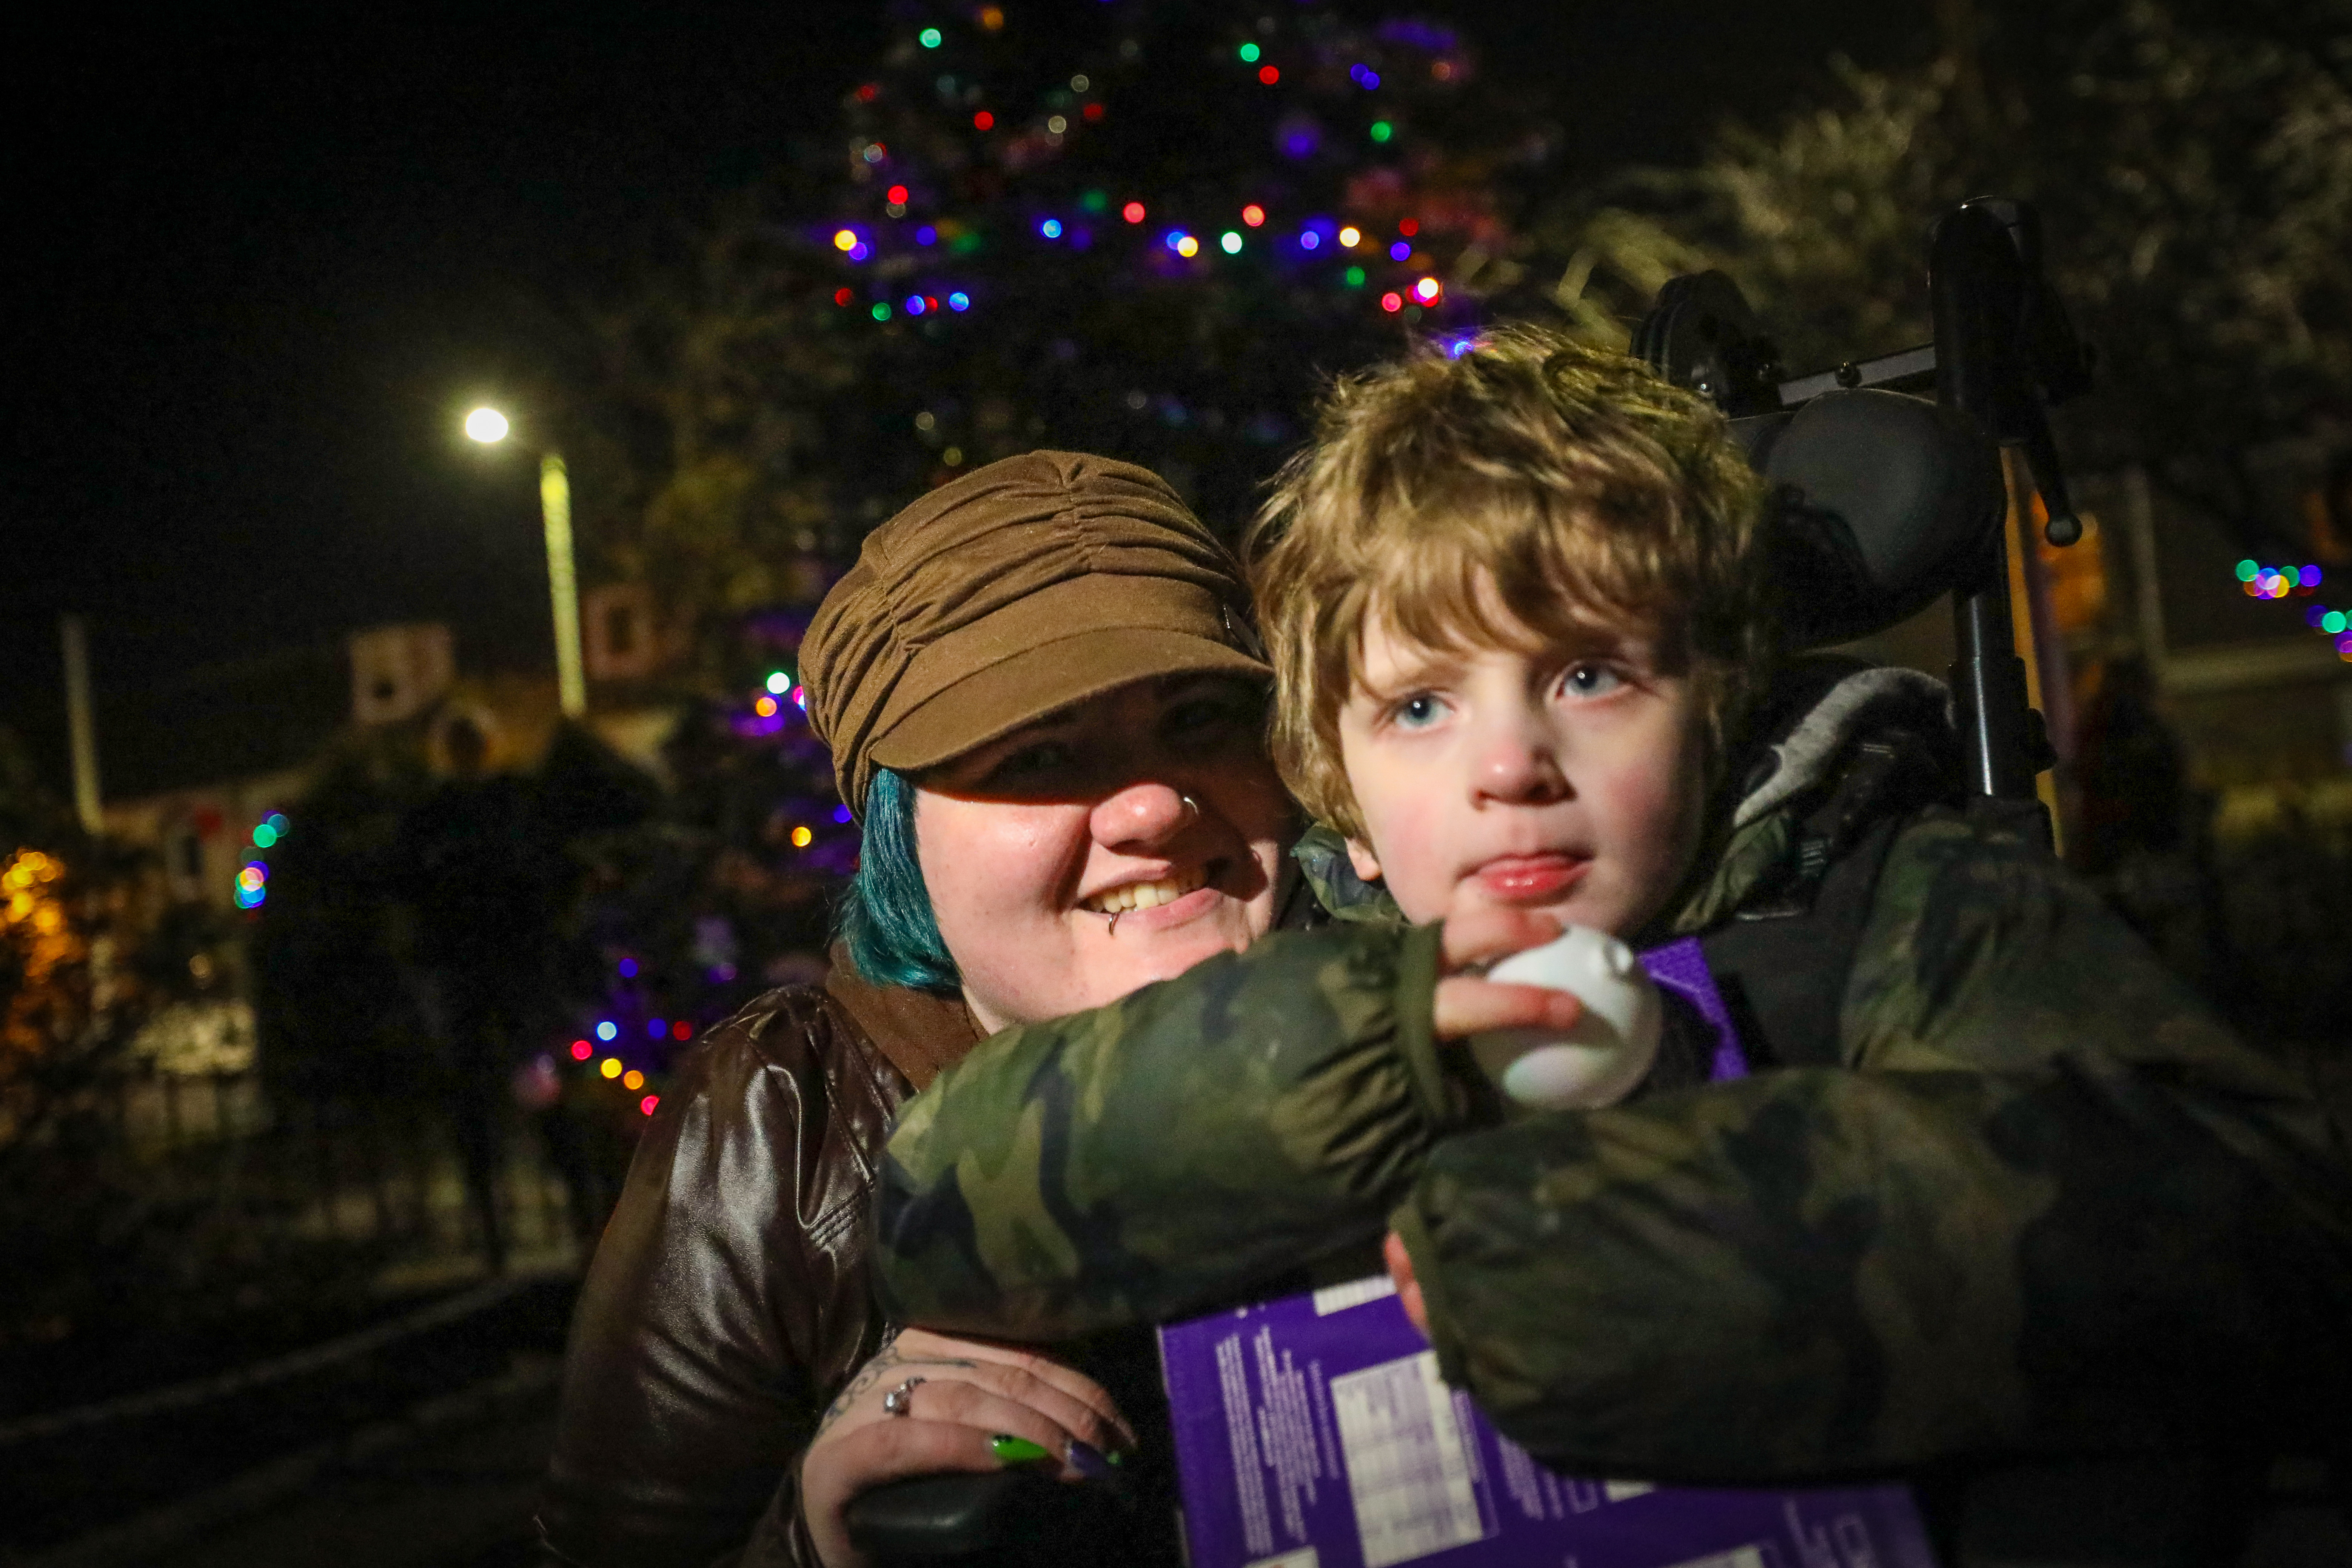 Kade and his Mum, Kassi, enjoyed Invergowrie's Christmas lights